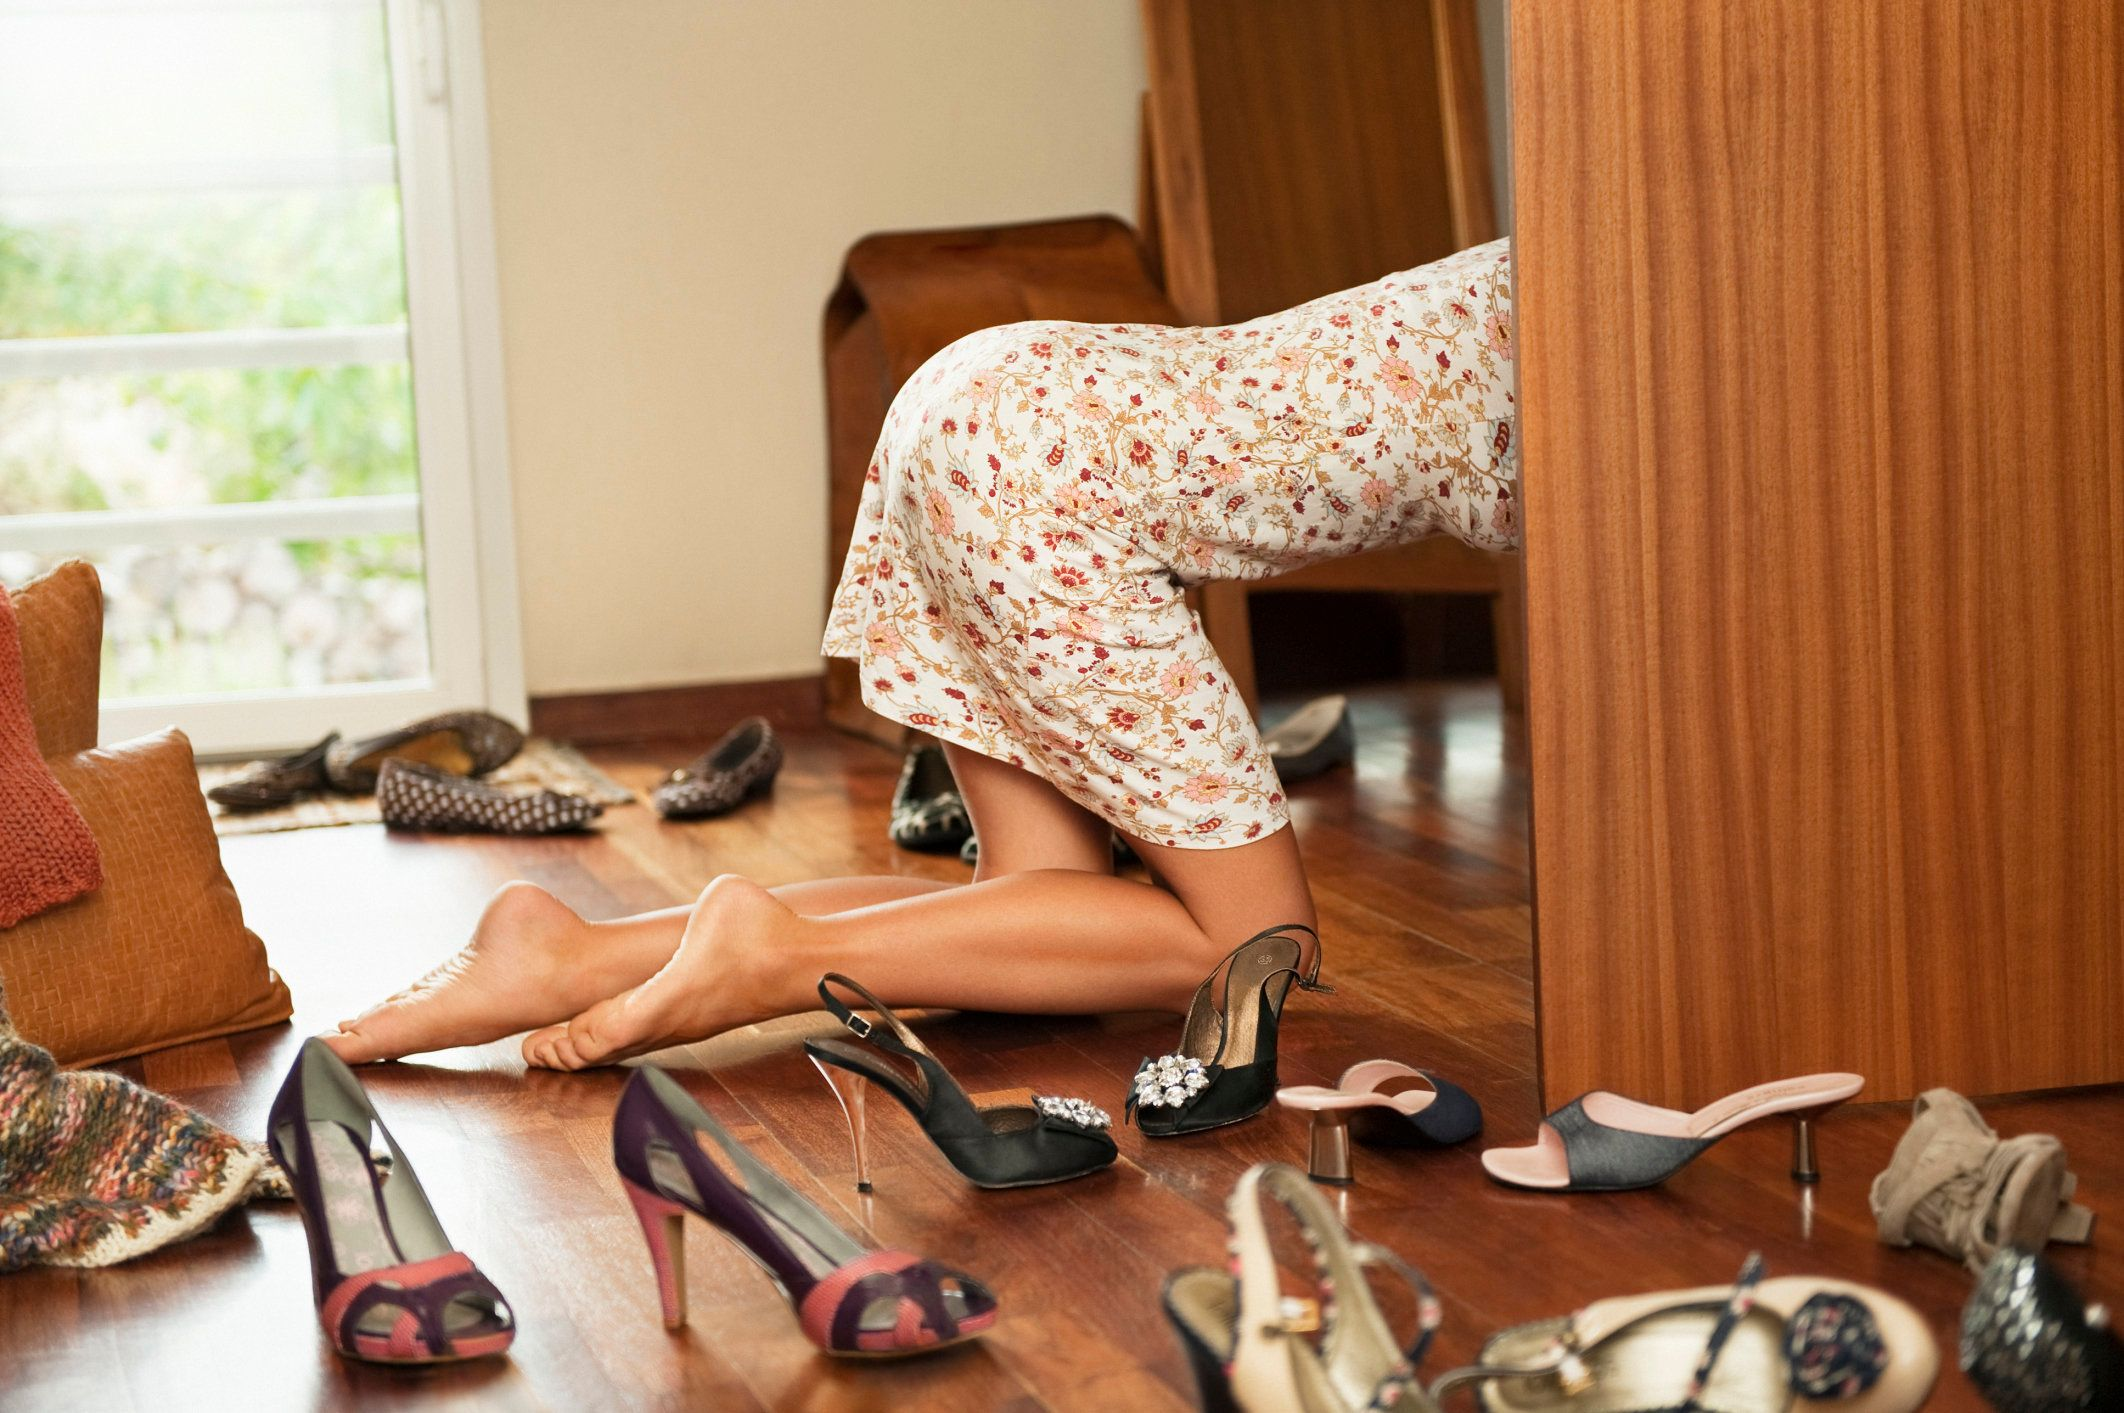 Young woman with a light flowered short dress kneeling barefoot on a hardwood floor among many shoes, she is searching for shoes and entering into her locker opened half hiding her, empty space on right side, wide angle view, France, Alpes Maritimes, Nice